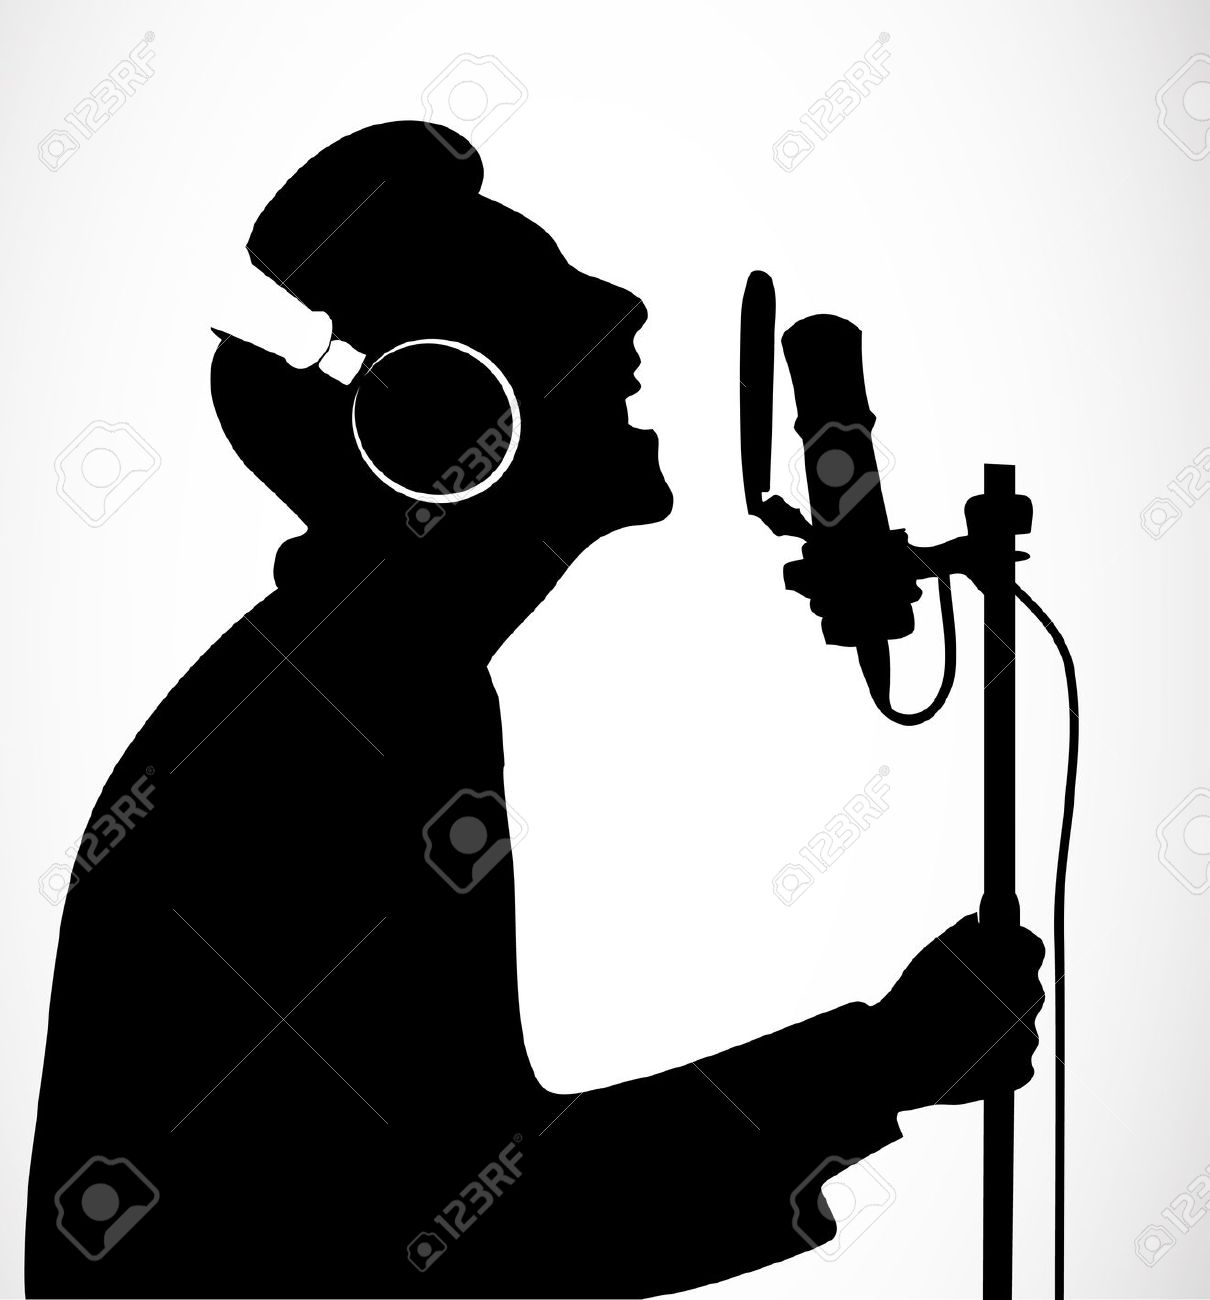 Similiar Singer Silhouette Clip Art Man Keywords.